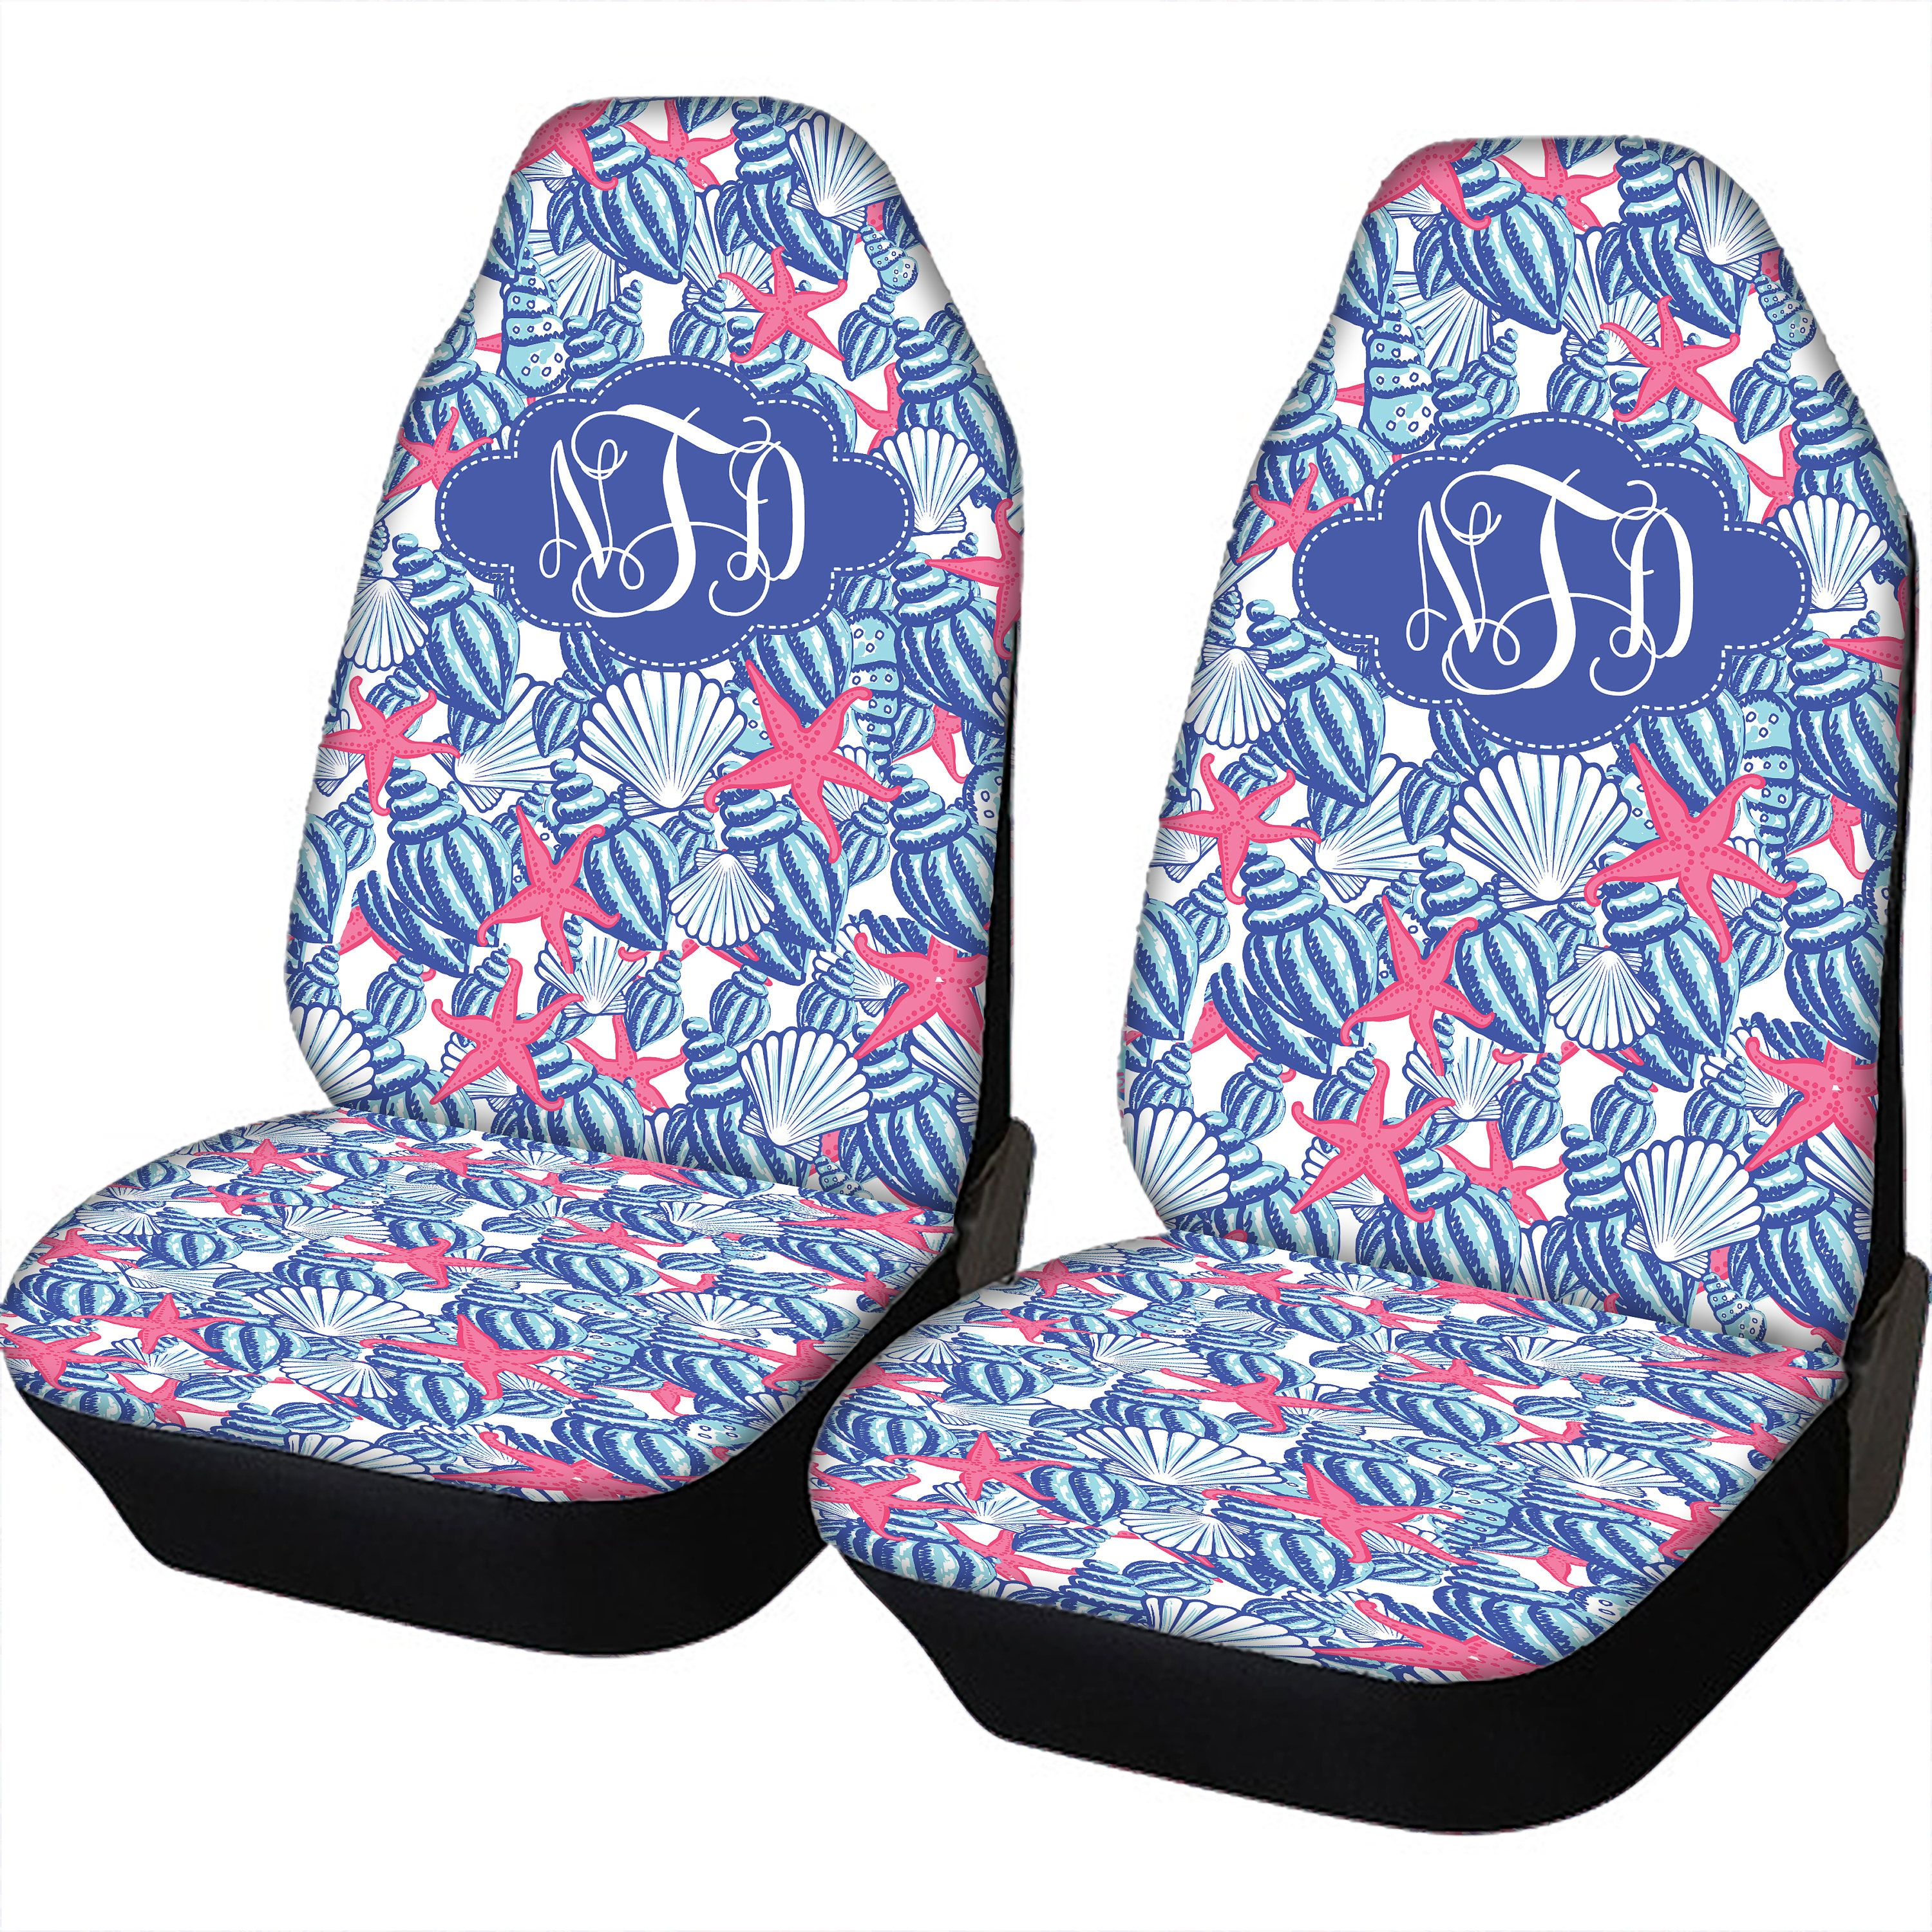 Custom Car Seat Covers - Seat Covers For Cars